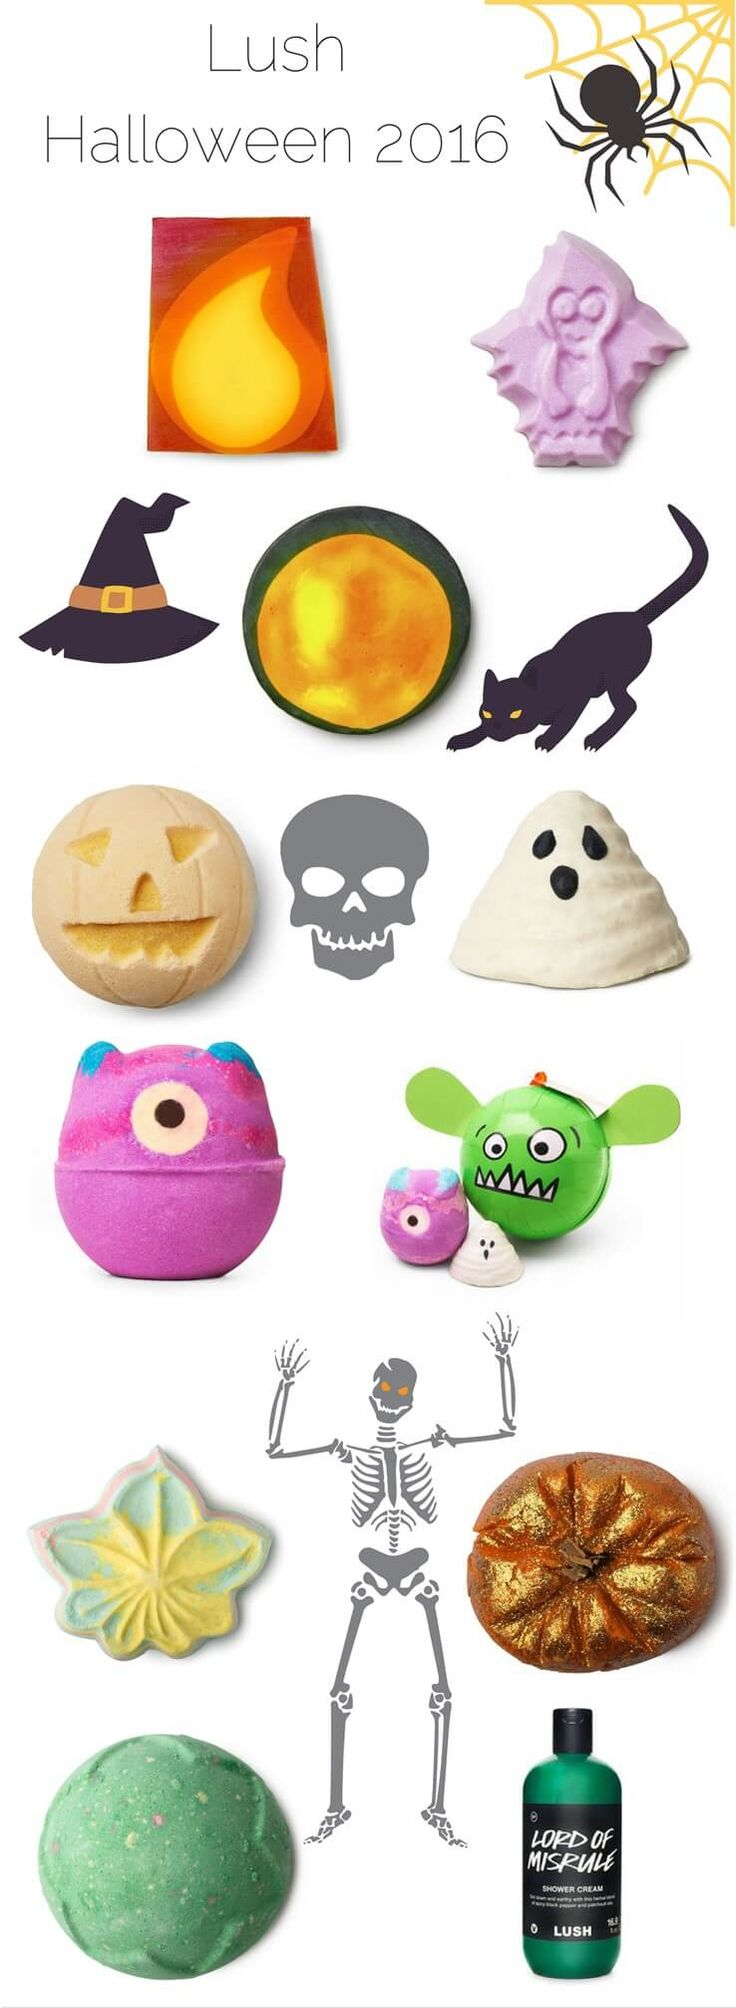 Lush Halloween 2016 Launches With Spooky Treats!